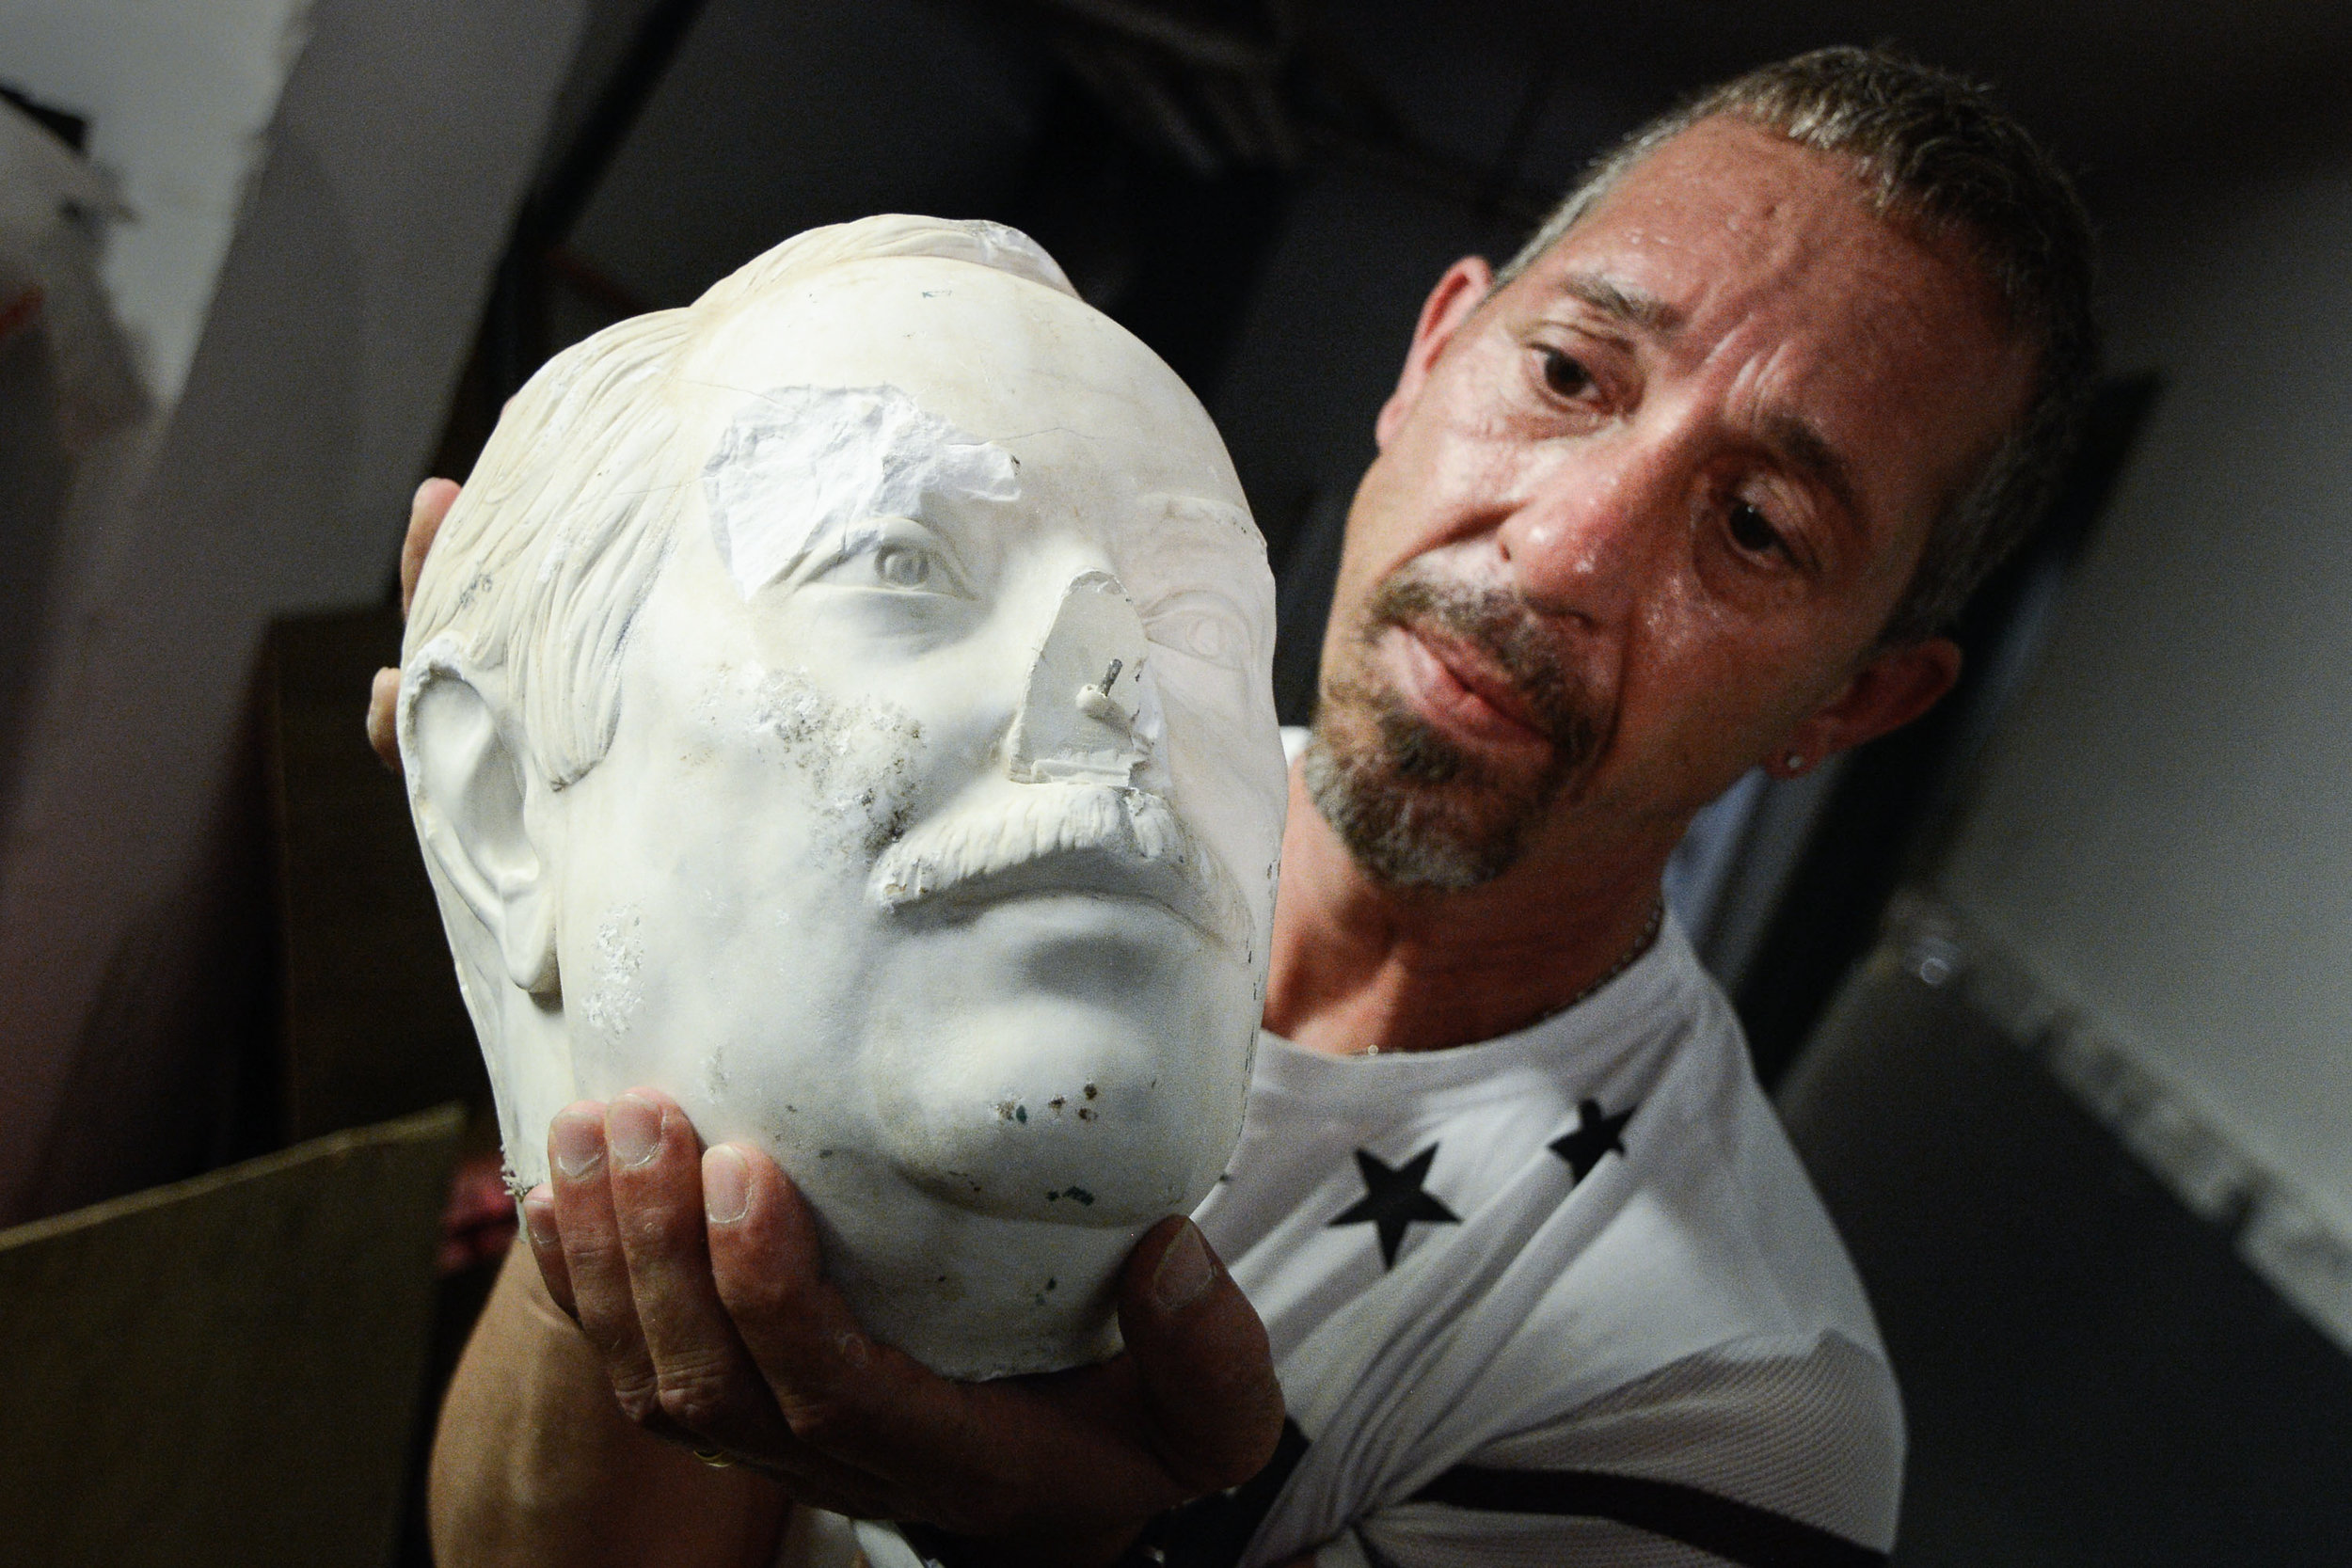 The head of vandalized statue of judge Giovanni Falcone is seen in Palermo, southern Italy, July 10, 2017.